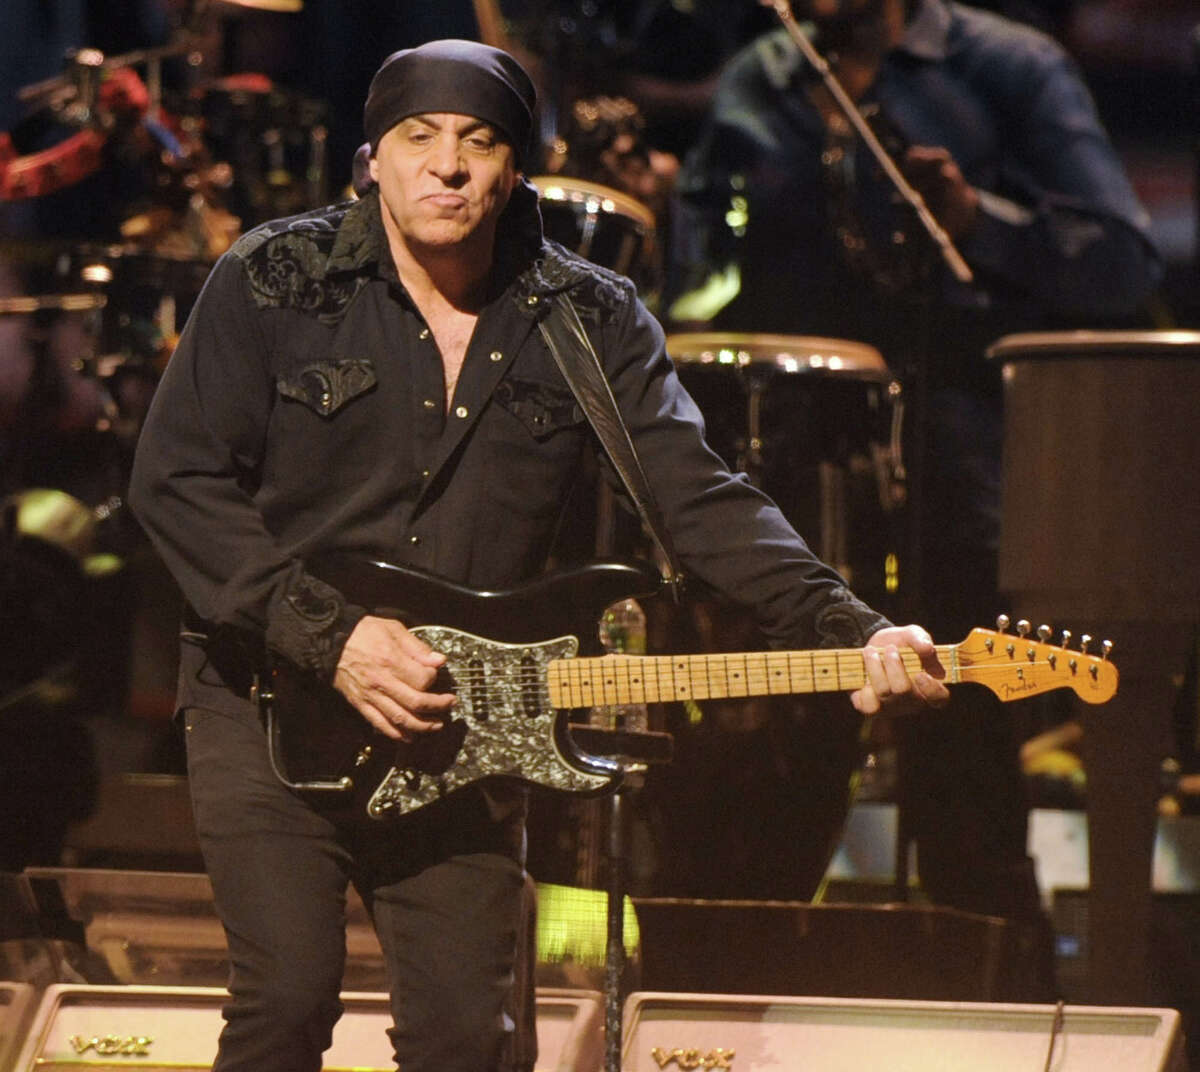 A local performance by E Street Band guitarist Steven Van Zandt has been canceled. Keep clicking for more concerts and shows coming soon.